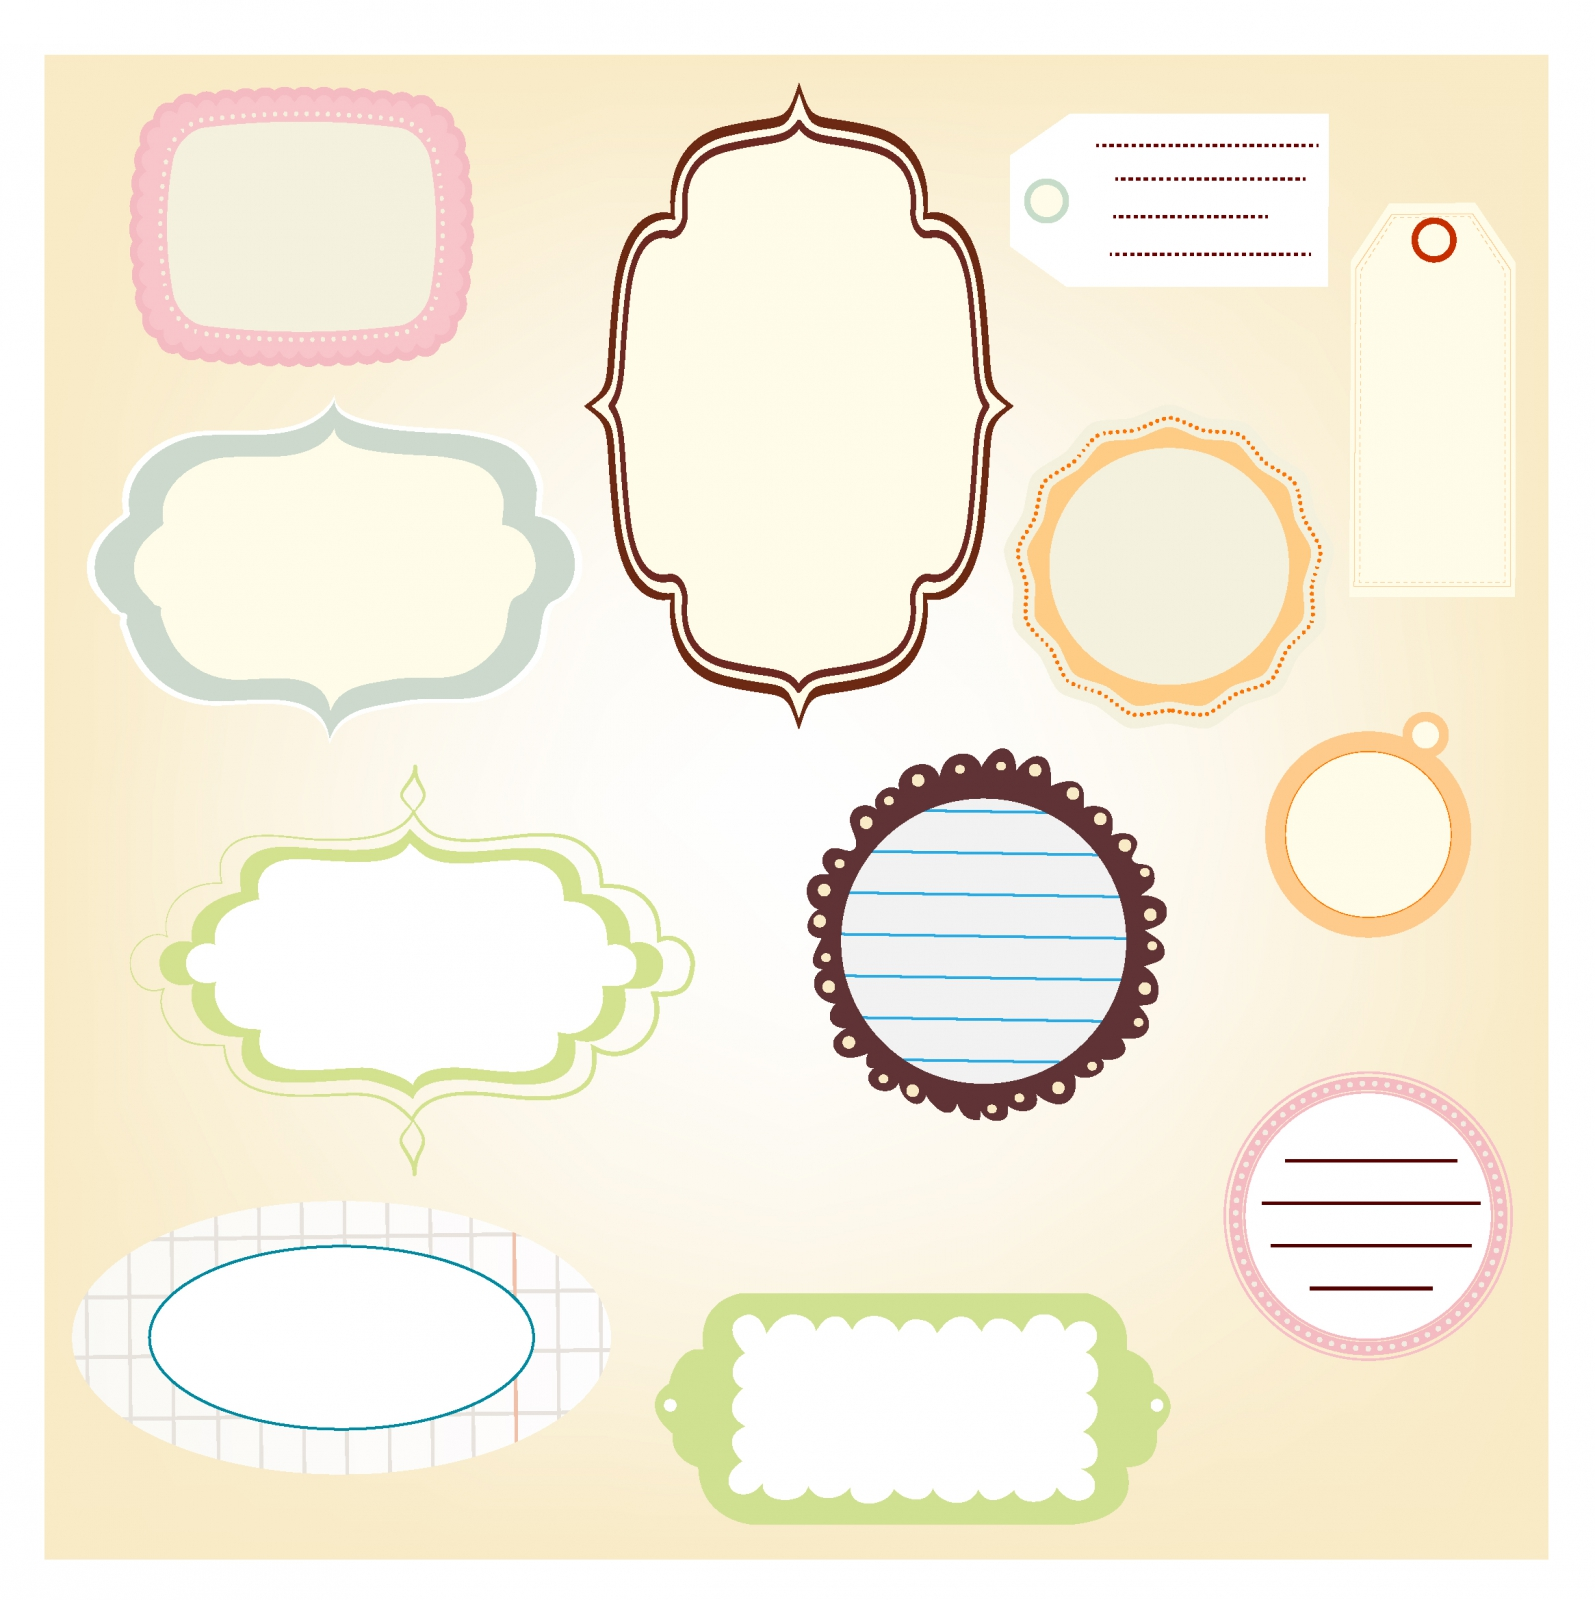 Scrapbook Label Free Vector